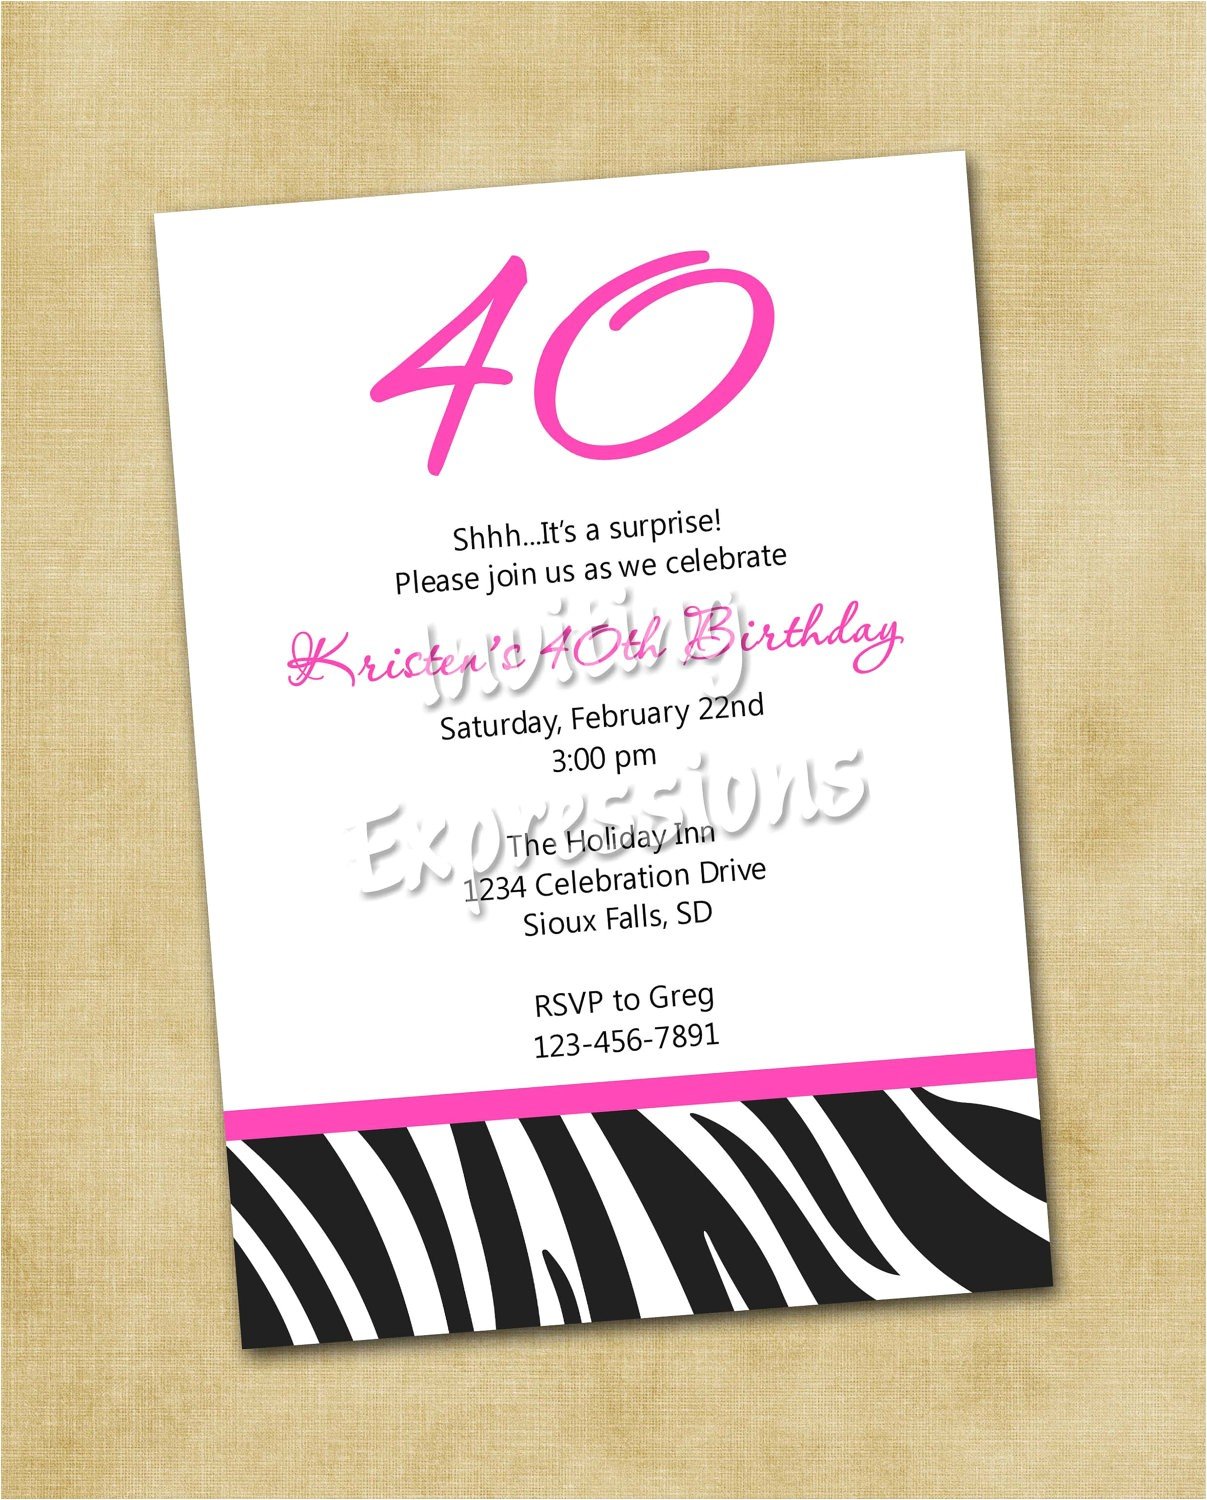 40th Birthday Invitations Wording top 13 40th Birthday Party Invitation Wording